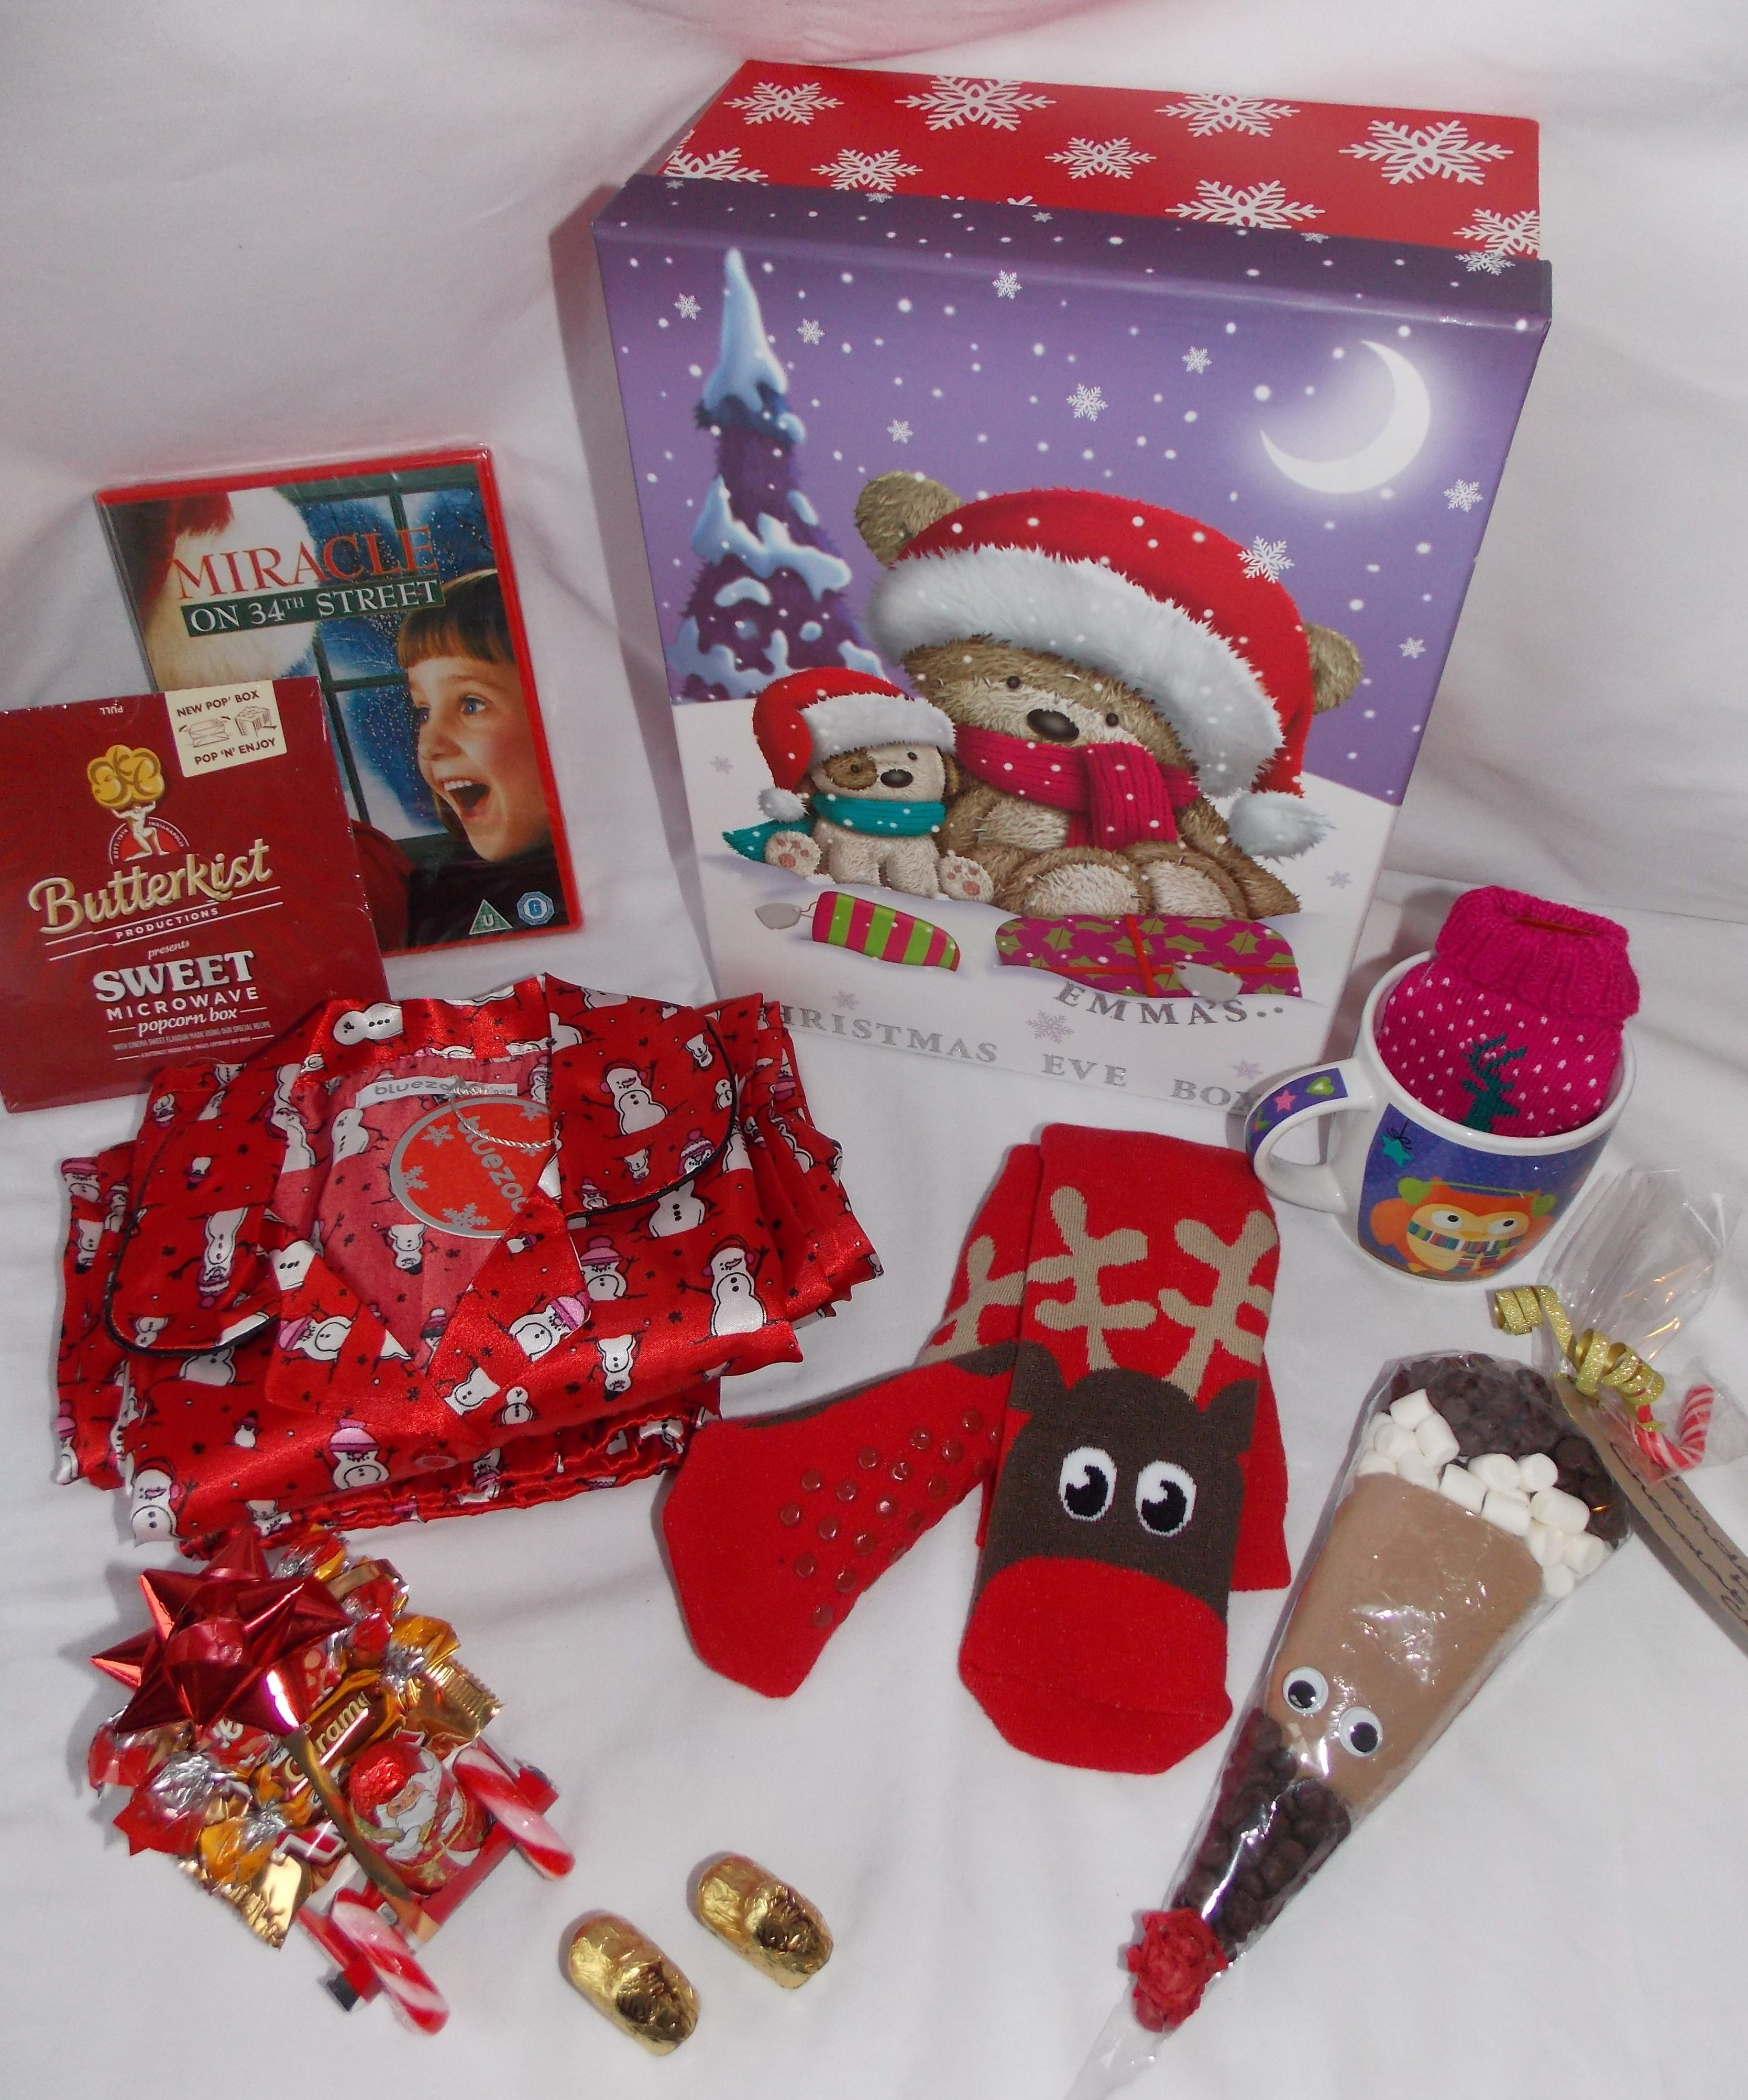 Early Christmas Present.Want To Treat Your Little One To An Early Christmas Present